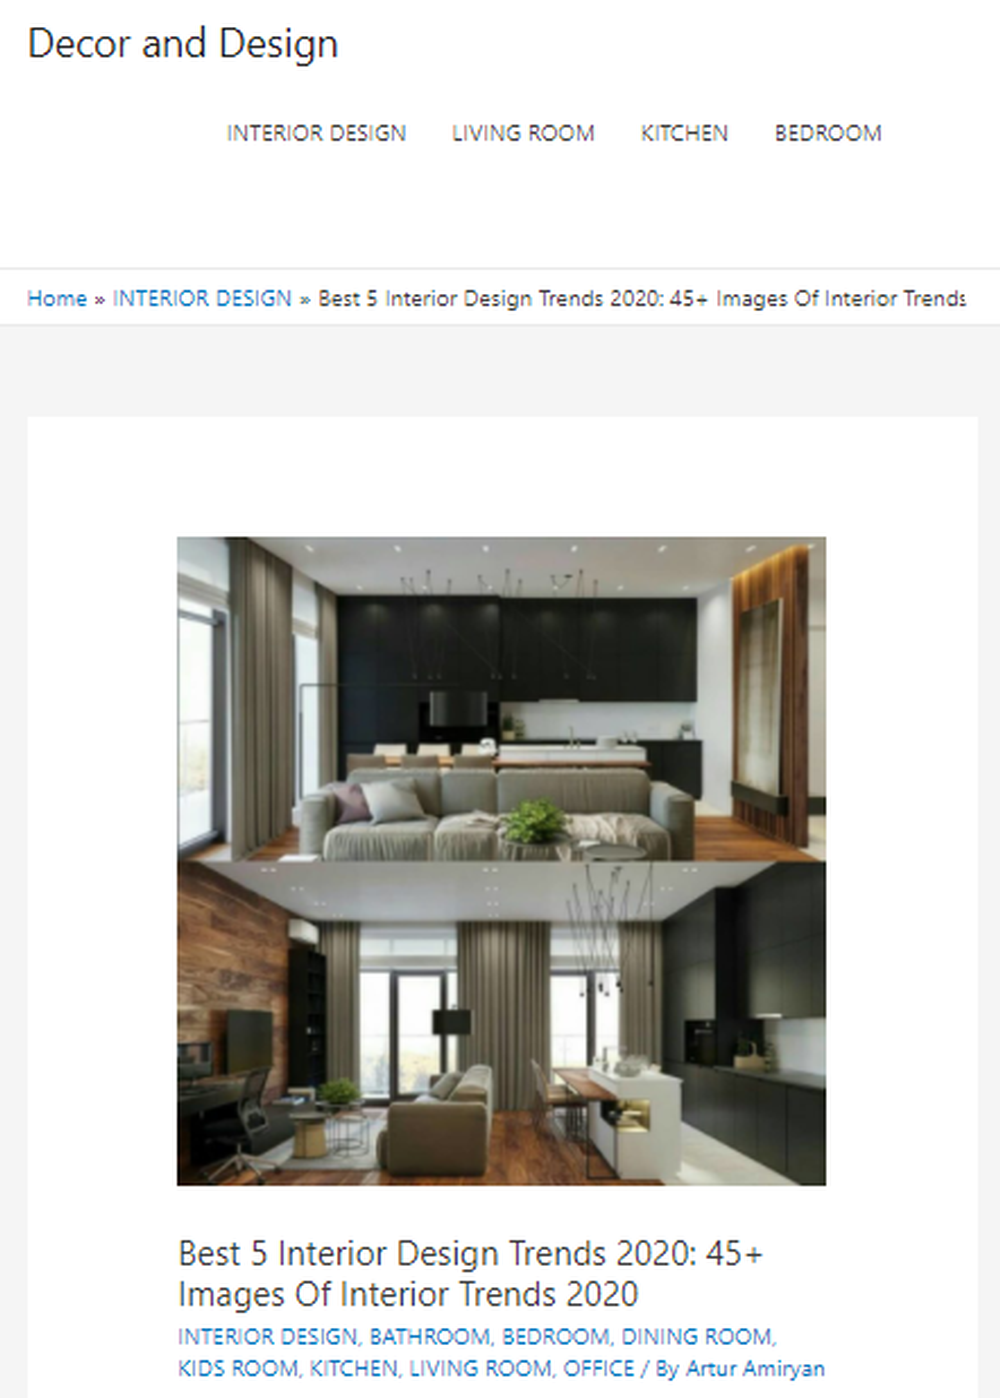 Best-5-Interior-Design-Trends-2020-45-Images-Of-Interior-Trends-2020.png